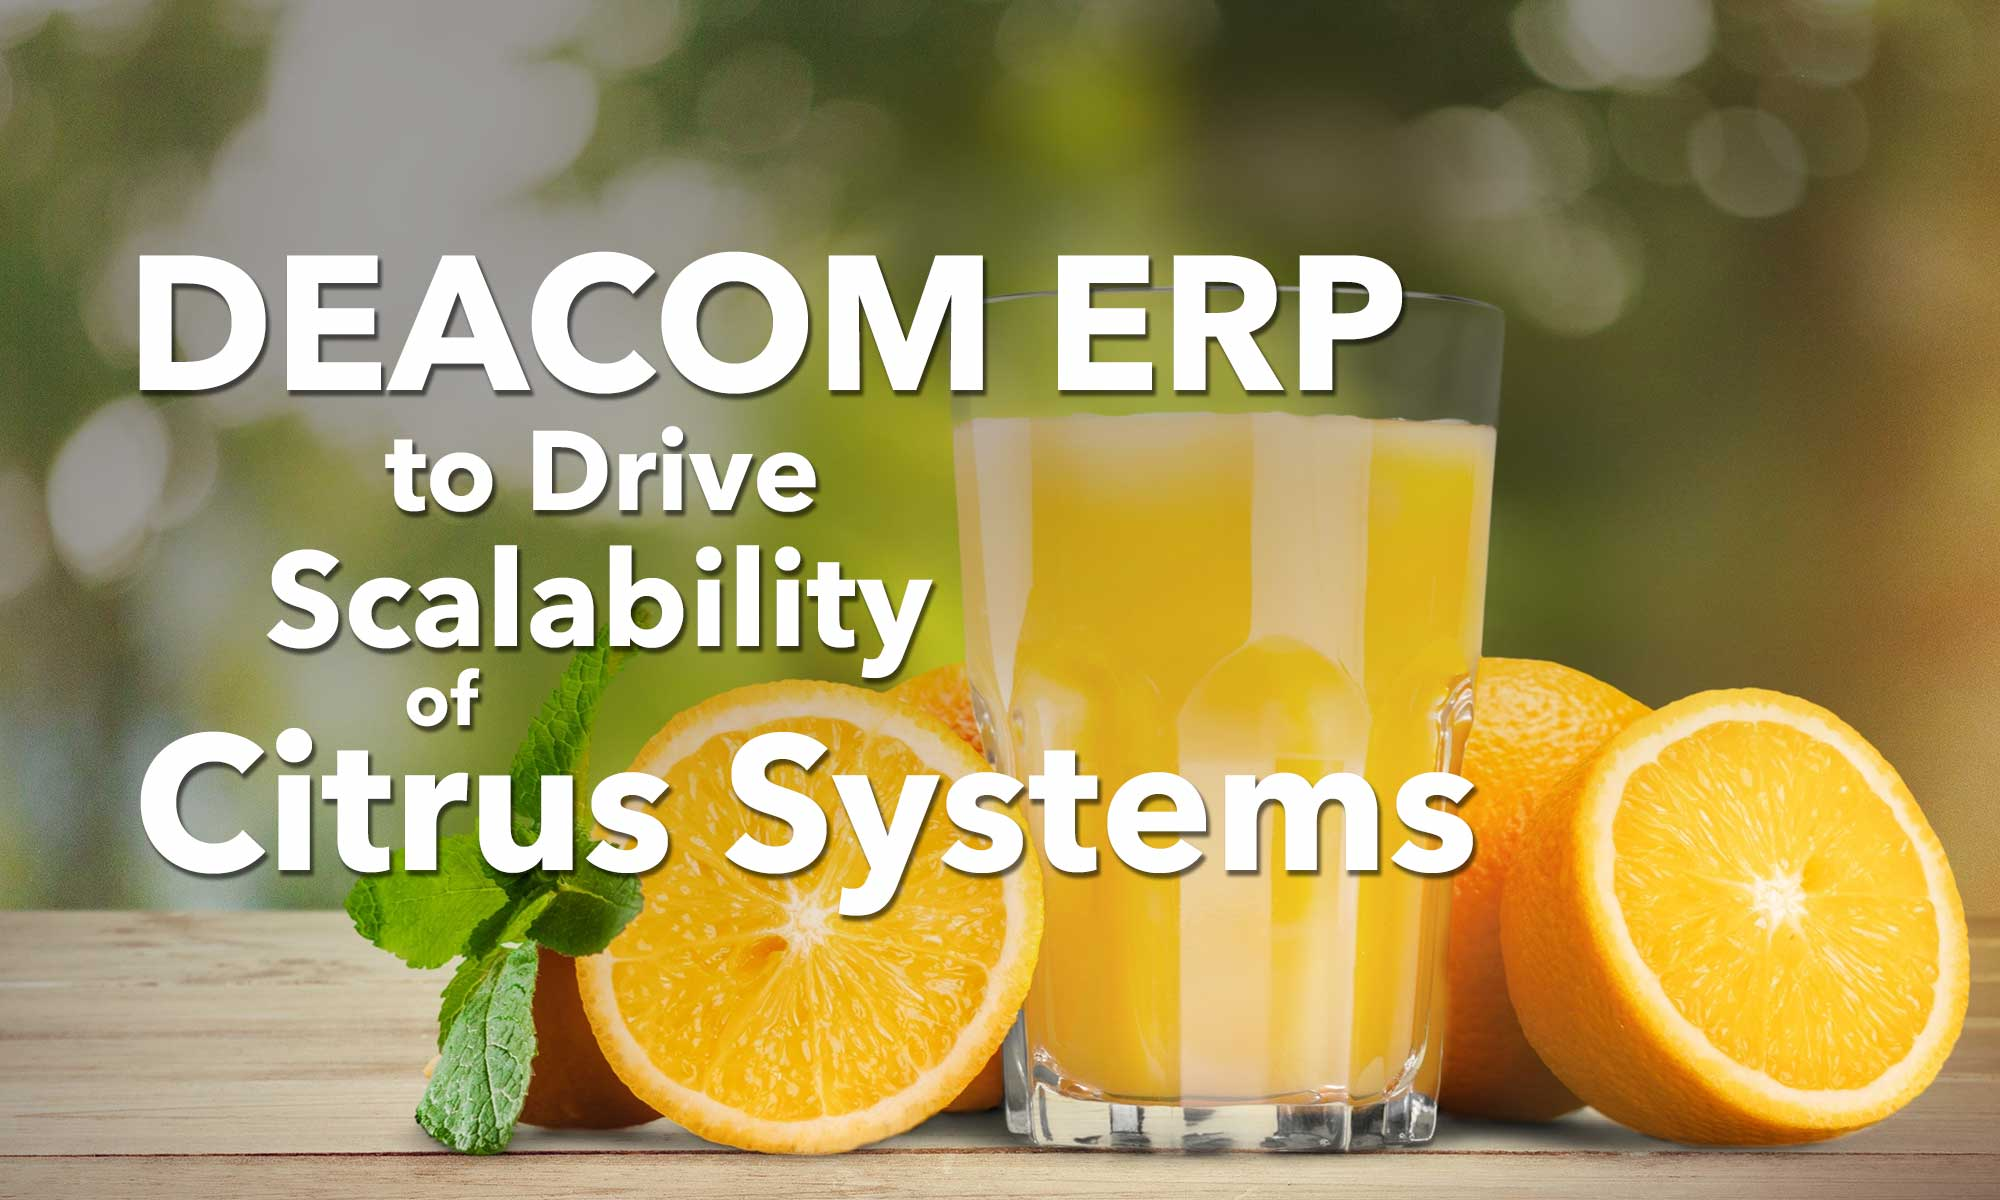 Citrus Systems begins implementation of DEACOM ERP